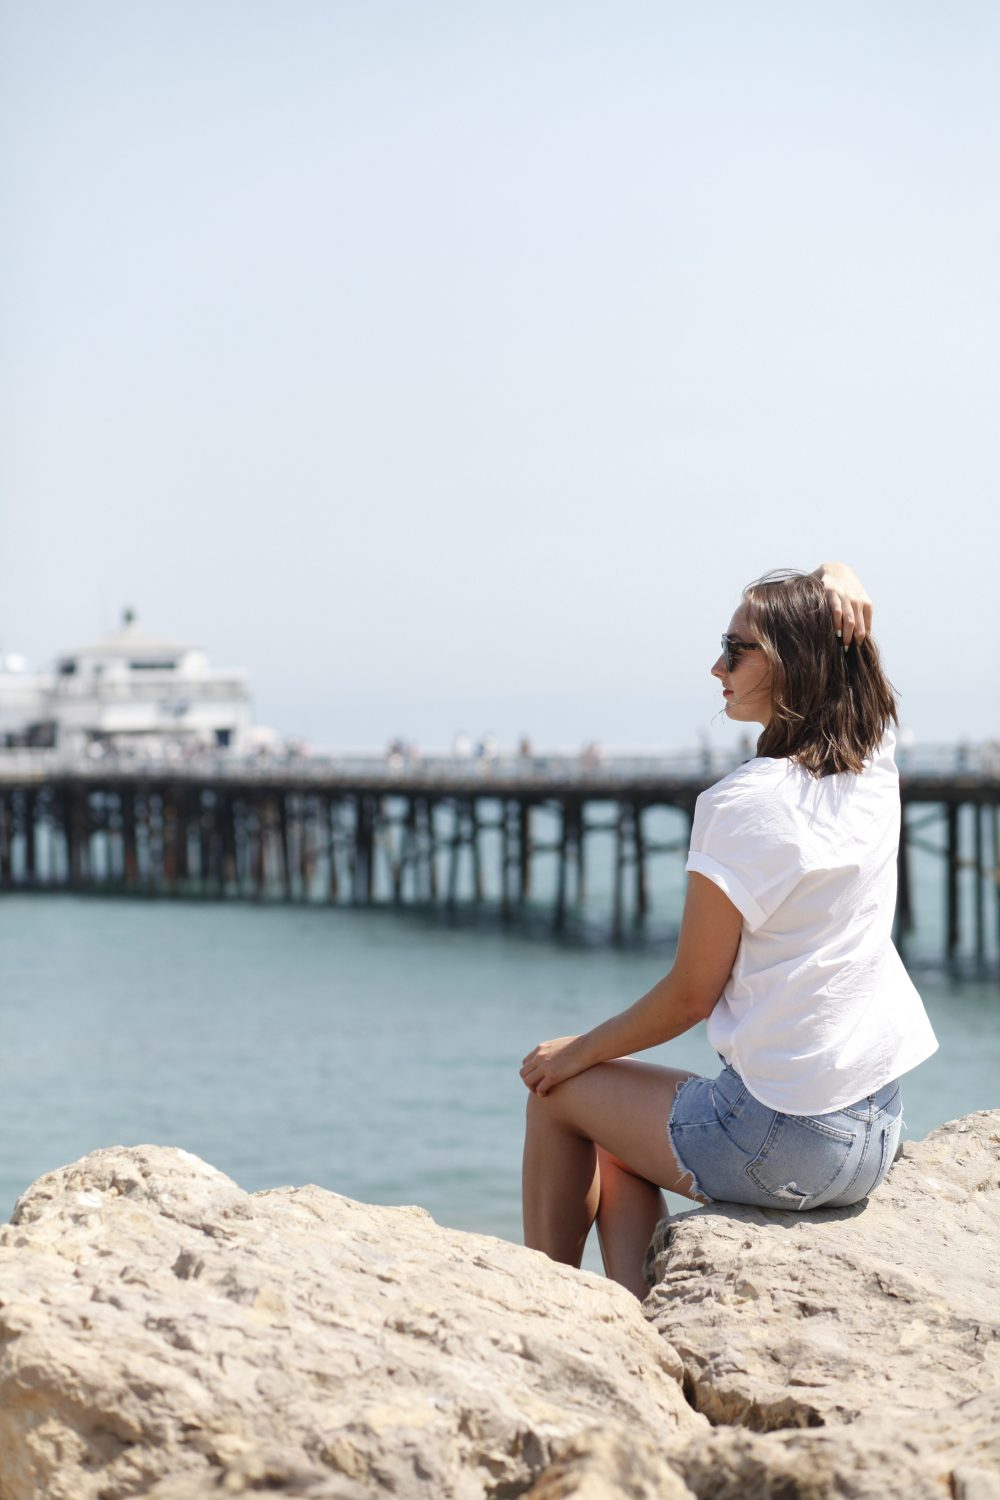 bucket list malibu pier beach ootd